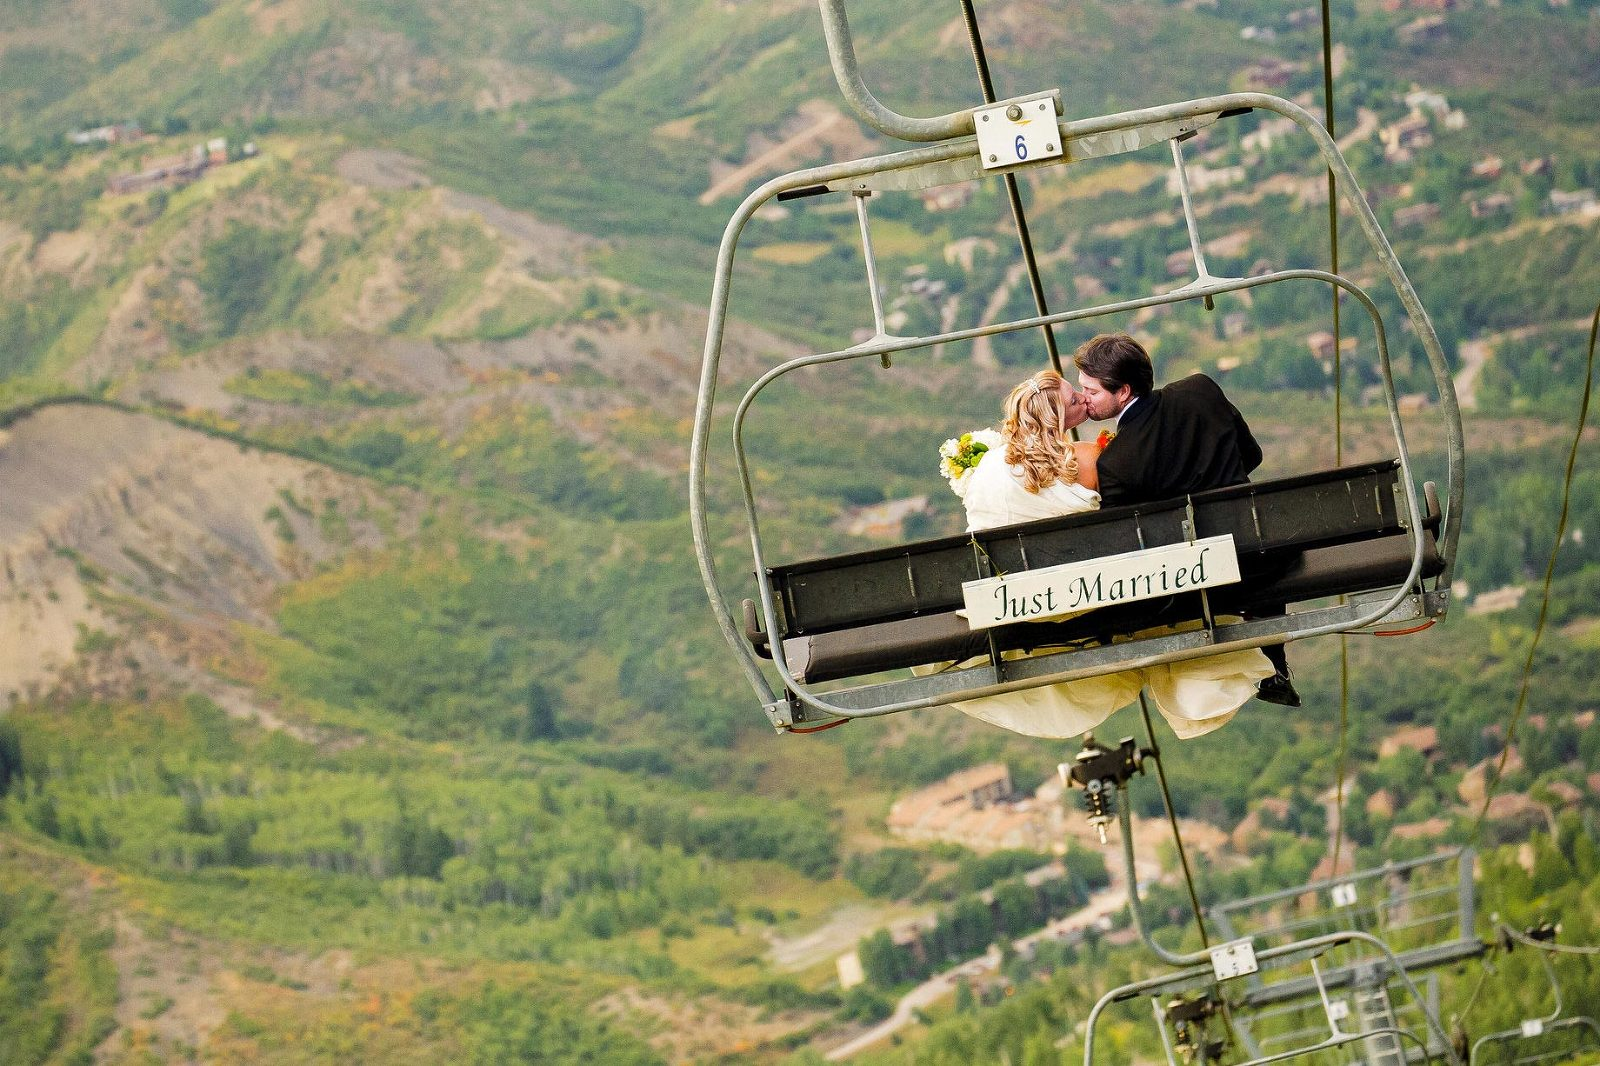 Ski resort weddings are popular in Lake Tahoe, because the bride and groom can ride the ski chairlift to and from their ceremony.